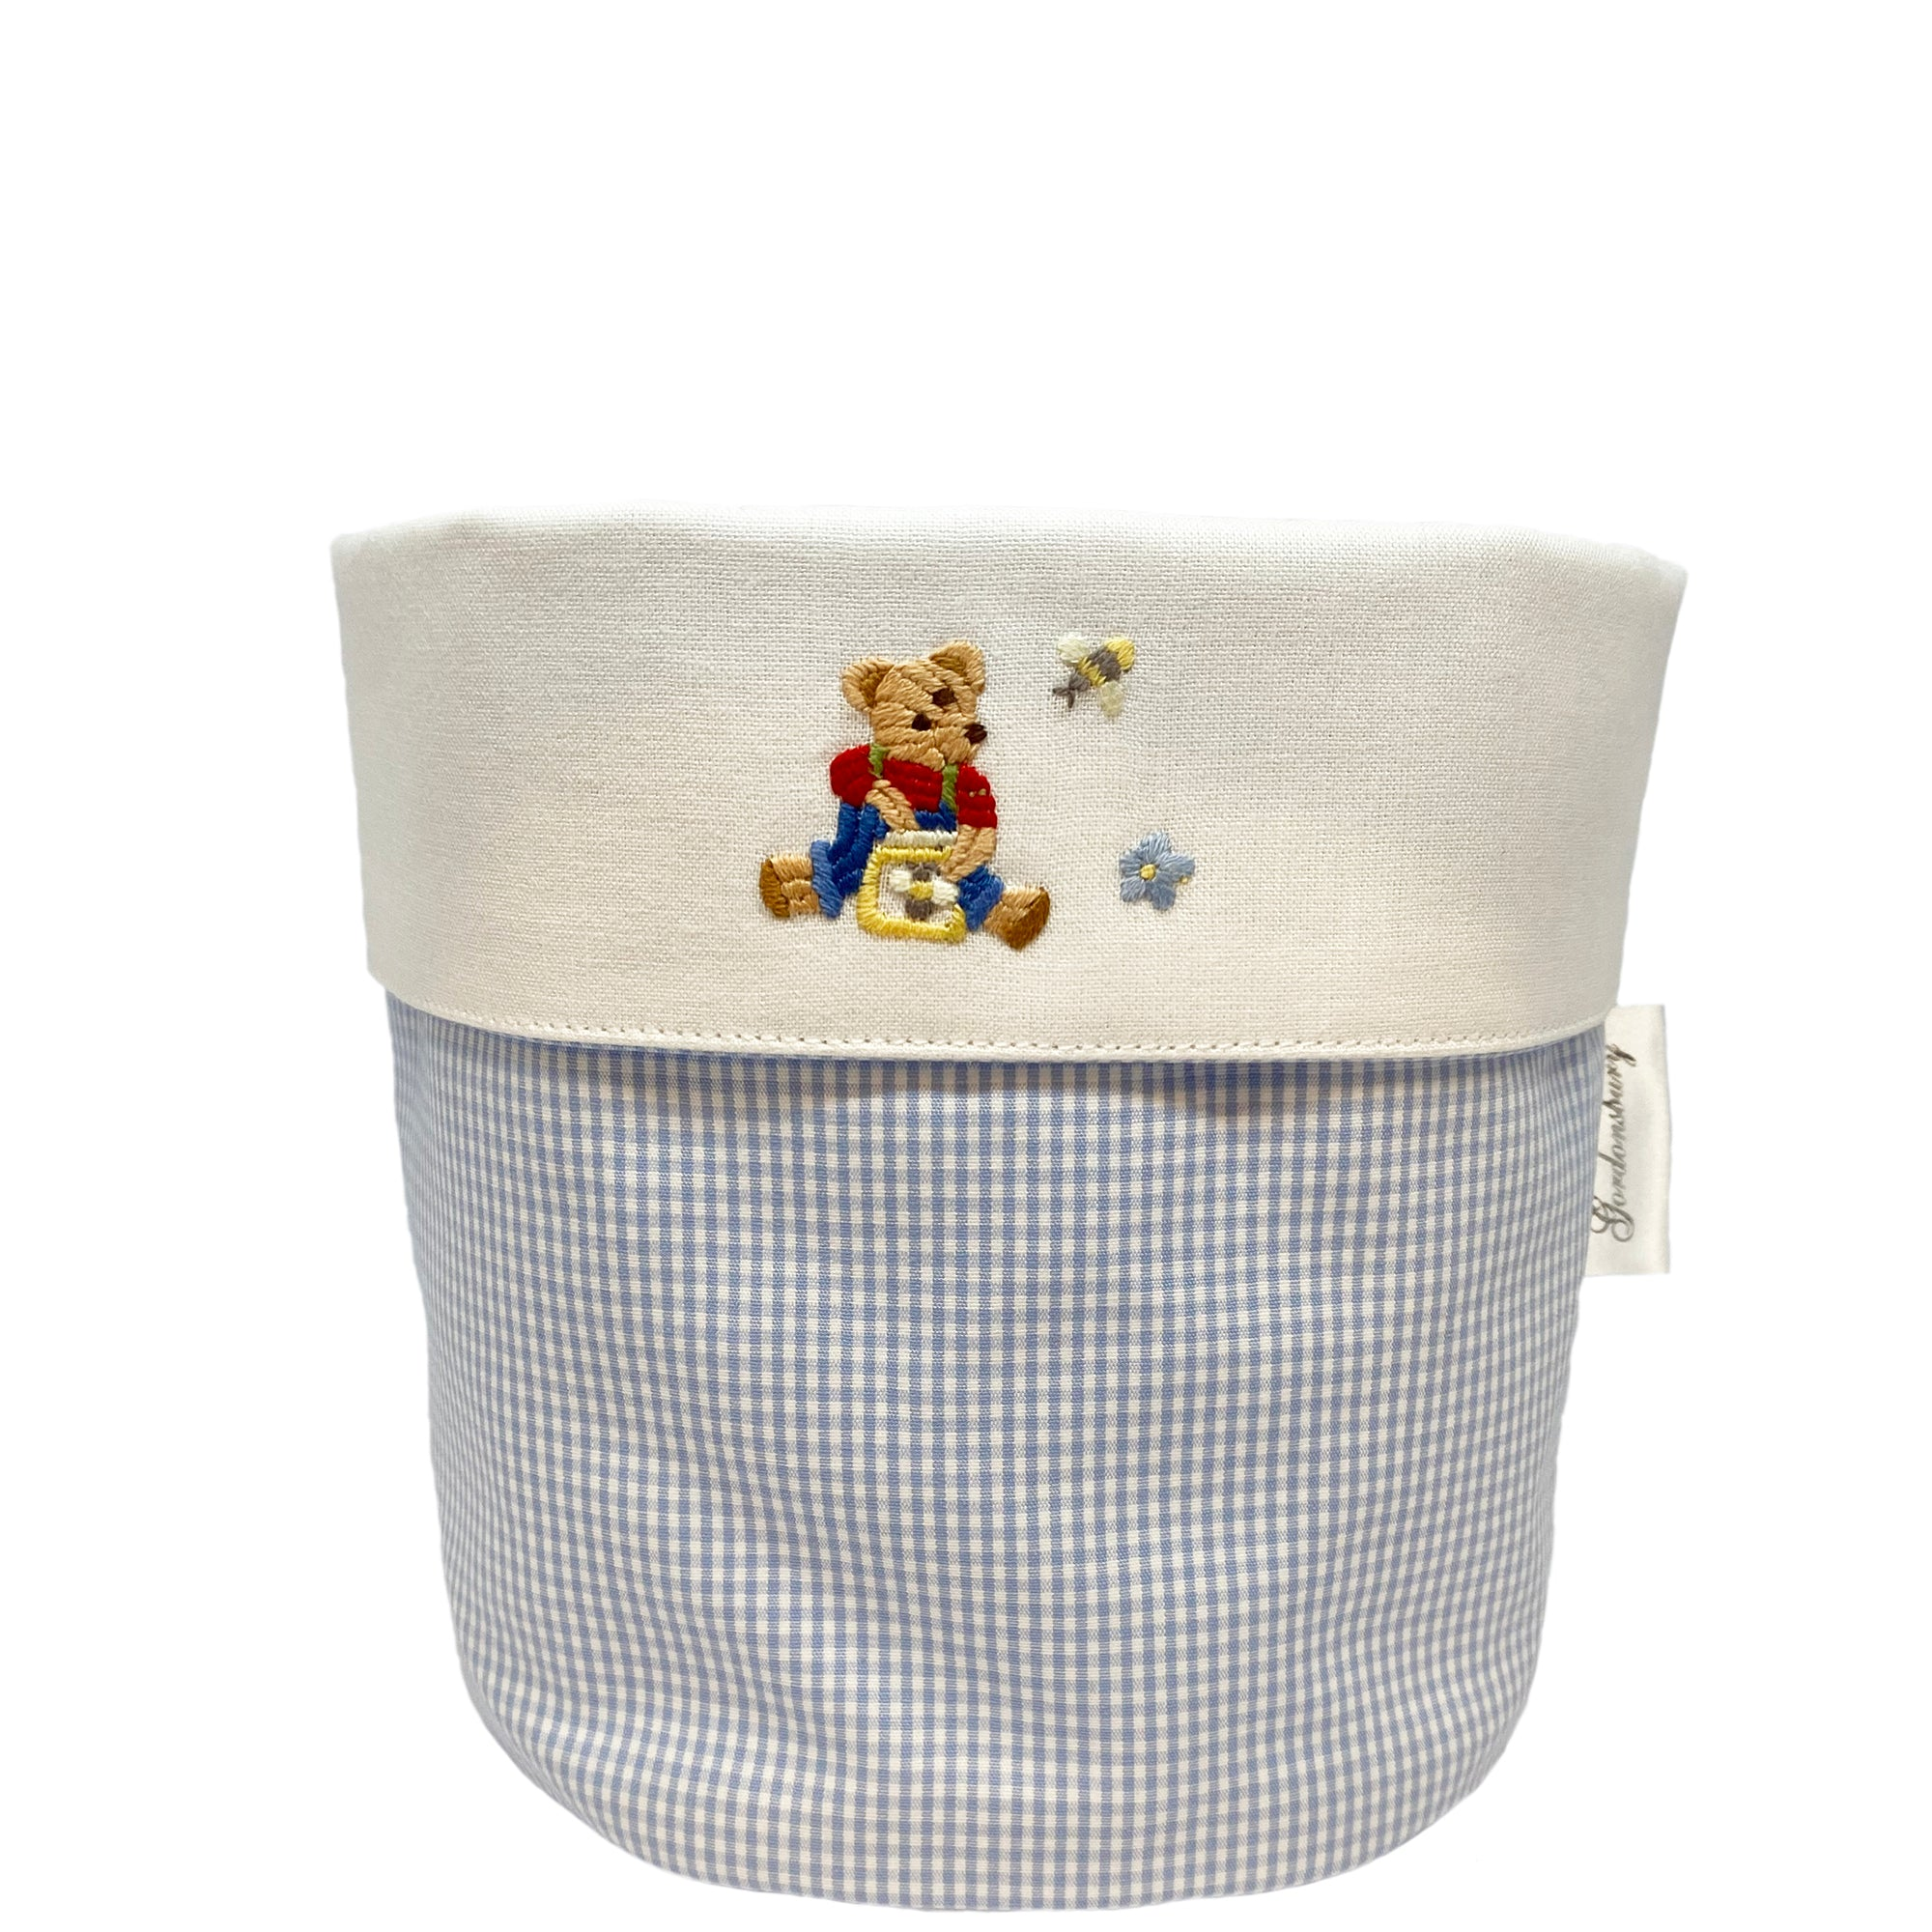 baby vanity holders with teddy bear